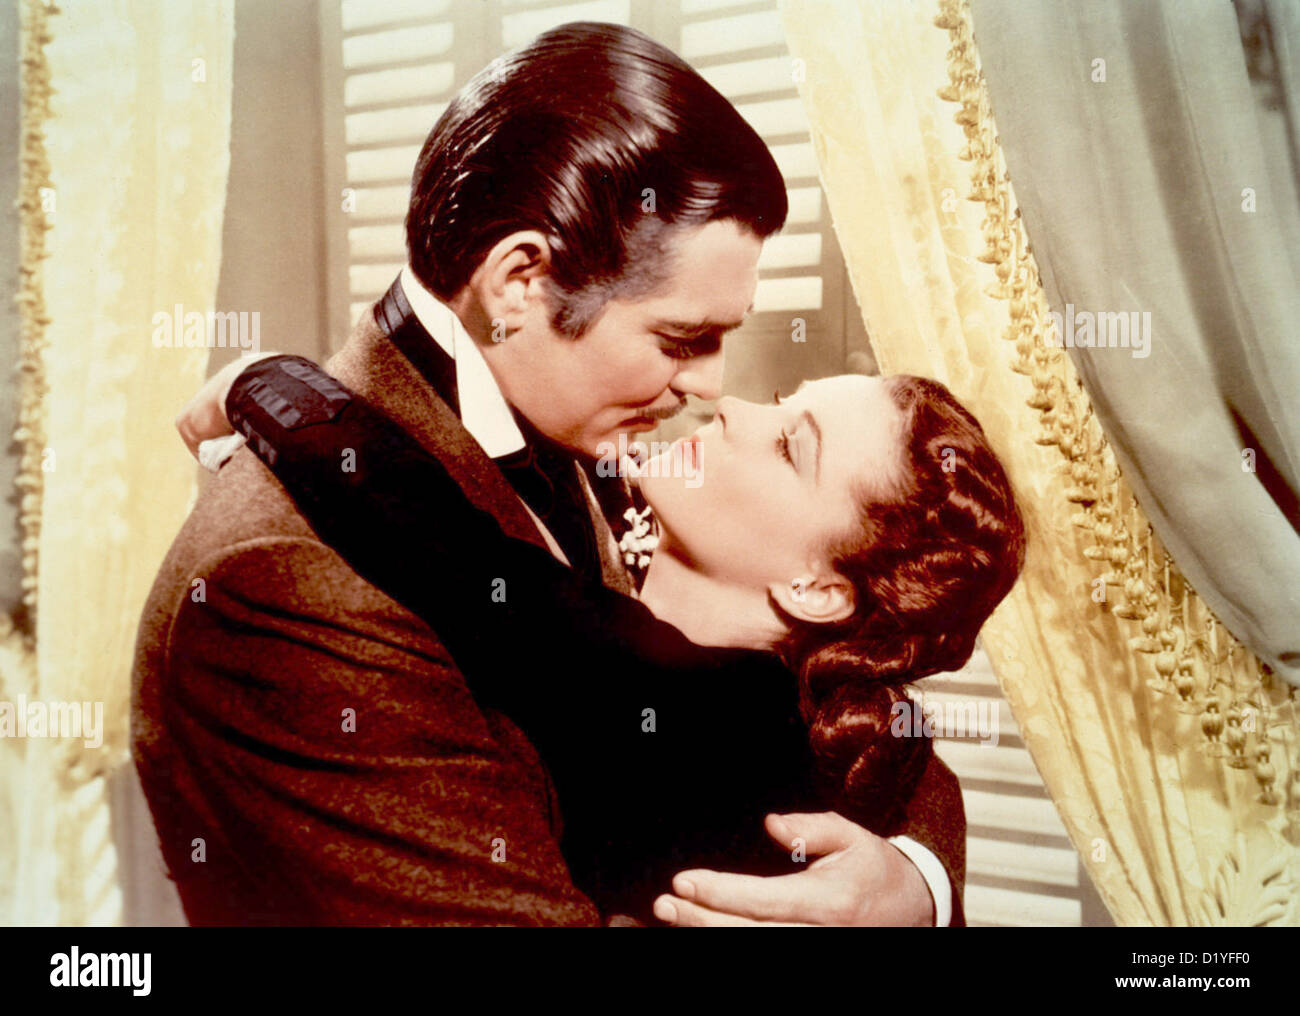 GONE WITH THE WIND  1939 MGM film with Clark Gable and Vivien Leigh - Stock Image